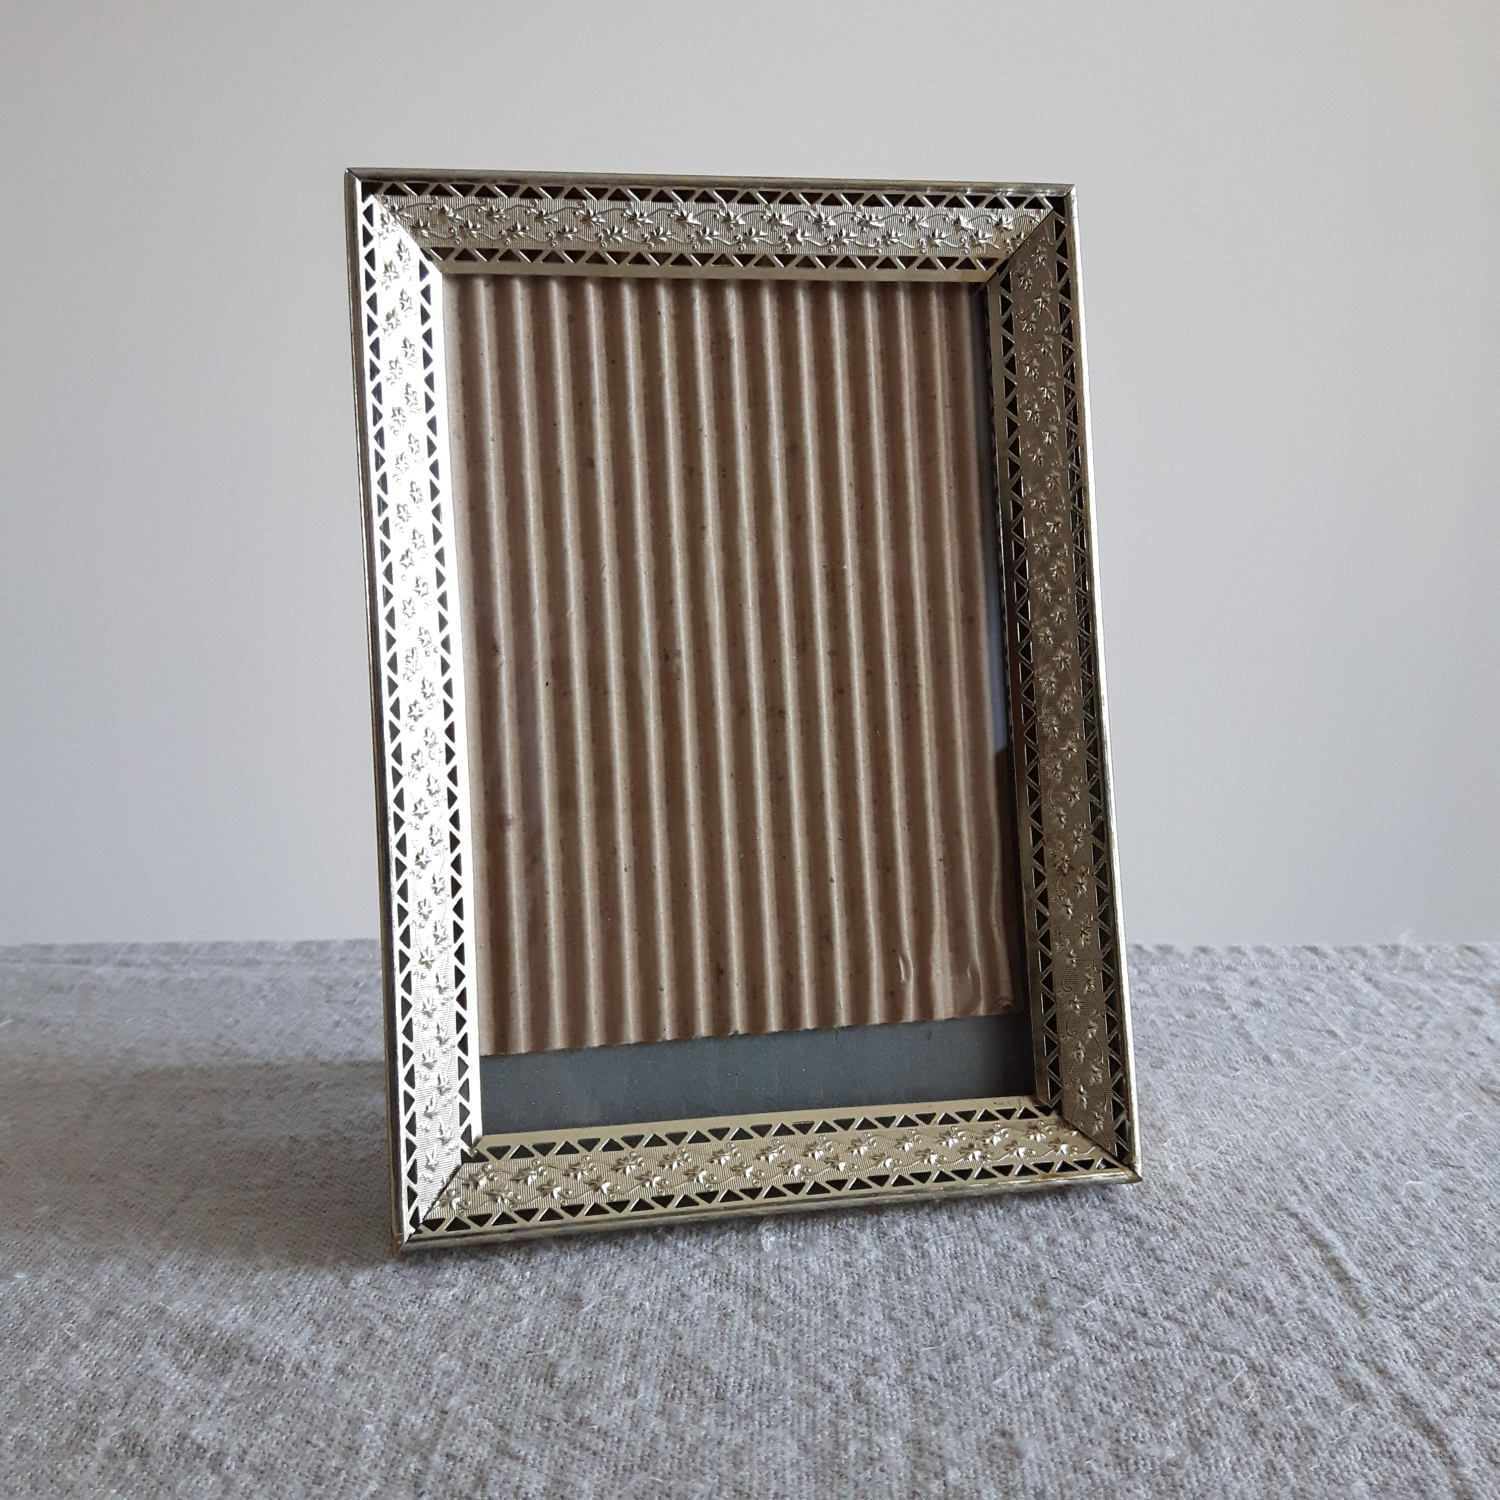 5 x 7 brass gold tone metal picture frames w ornate design 5 x 7 brass gold tone metal picture frames w ornate jeuxipadfo Images